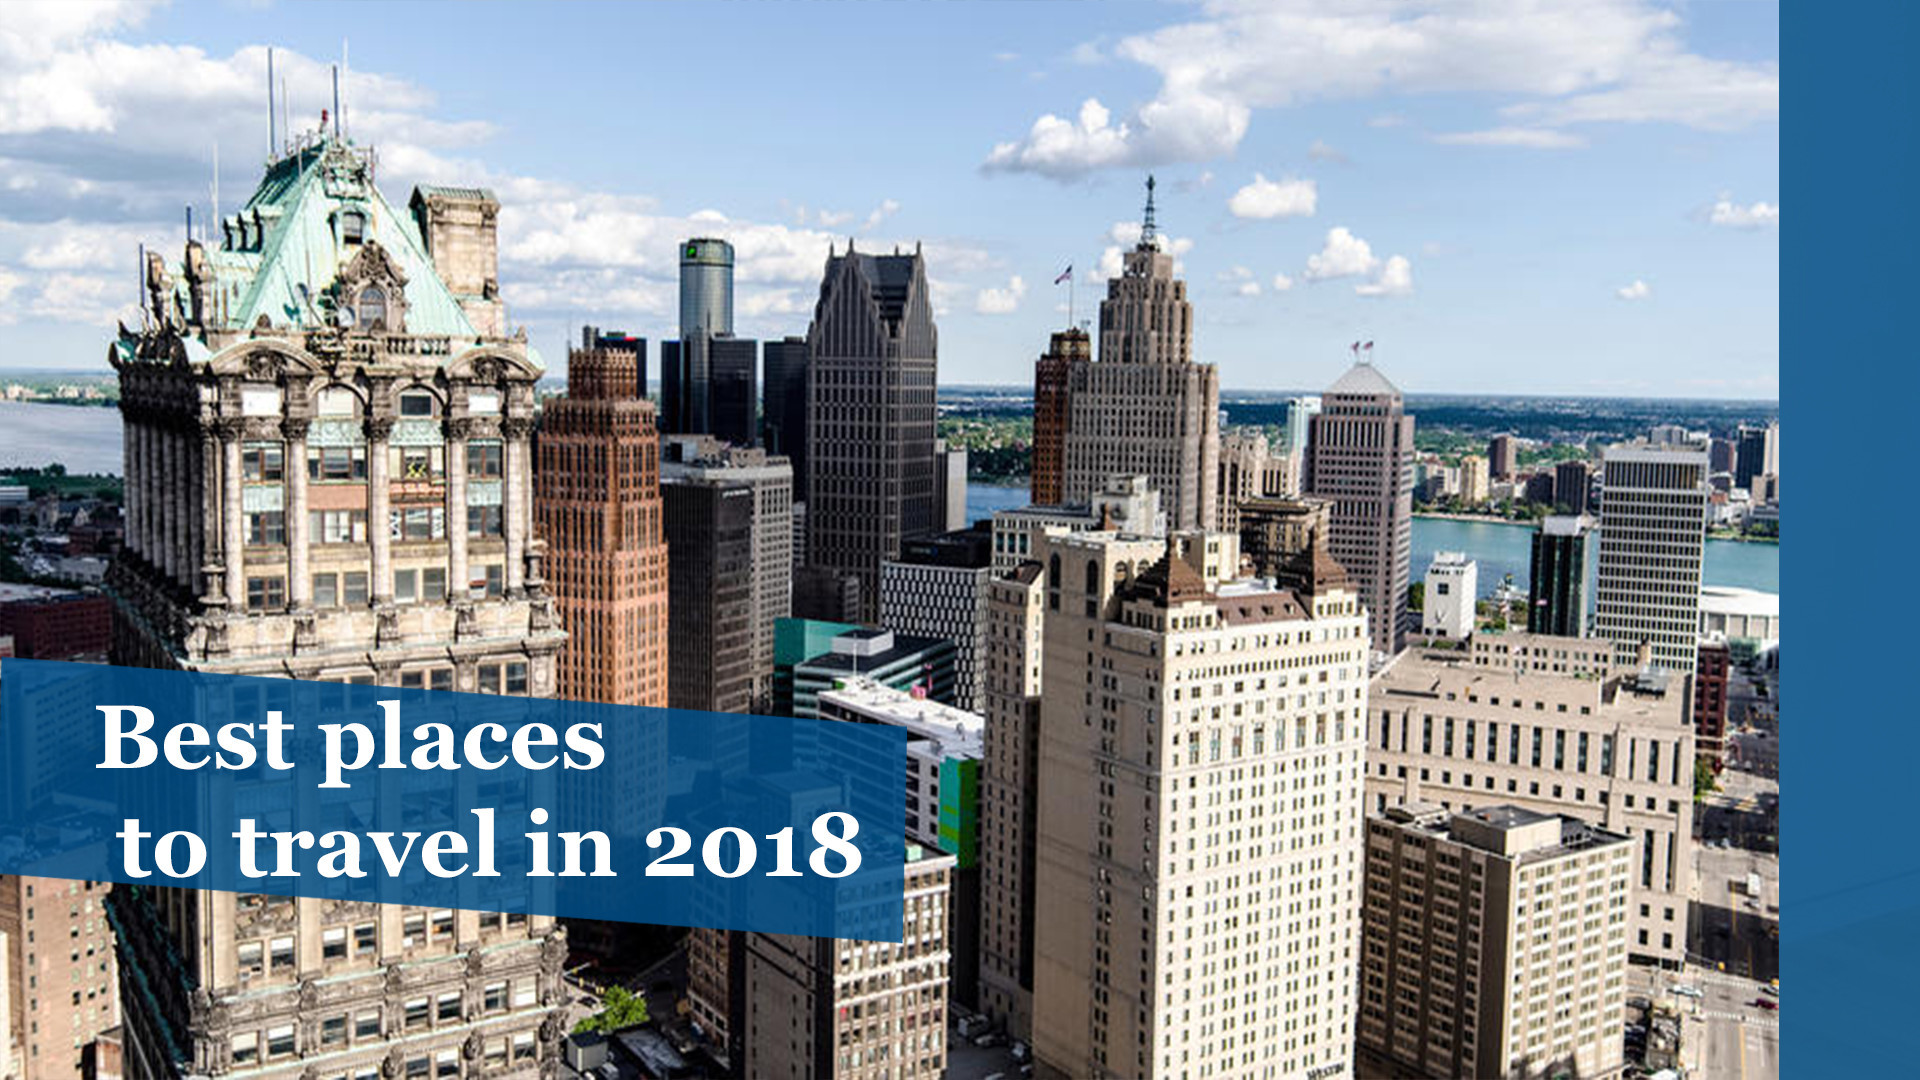 Lonely planet 39 s best places to travel in 2018 includes a for Best travel locations in the us